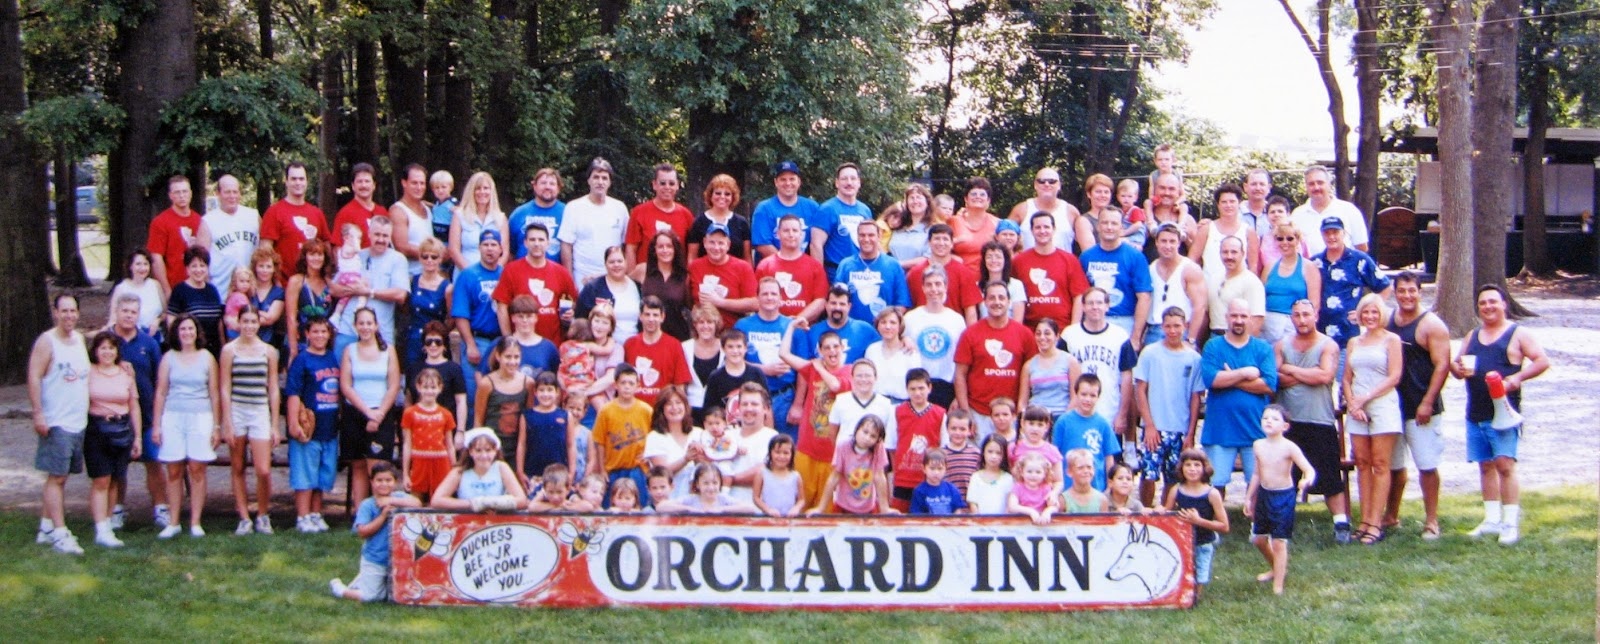 First Orchard Inn Picnic & sign 2000 at Nansen's Lodge